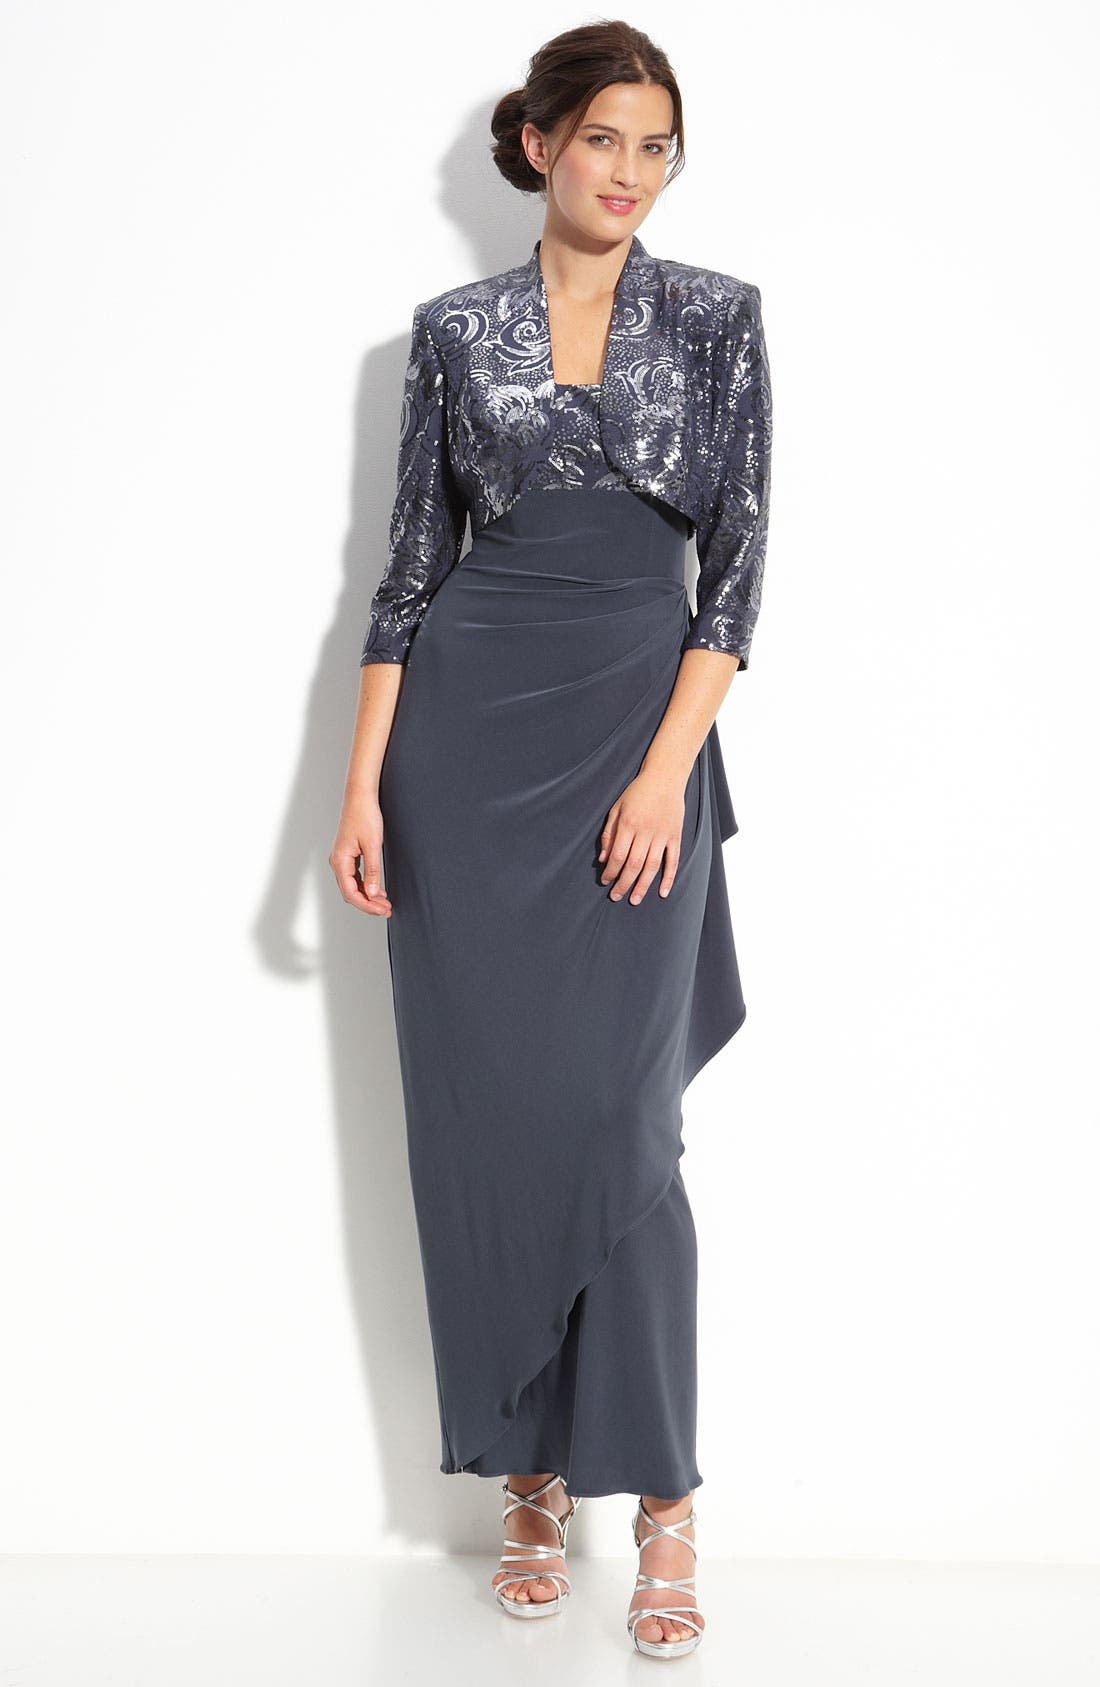 Alternate Image 1 Selected - Alex Evenings Sequin Jersey Gown & Bolero (Petite)